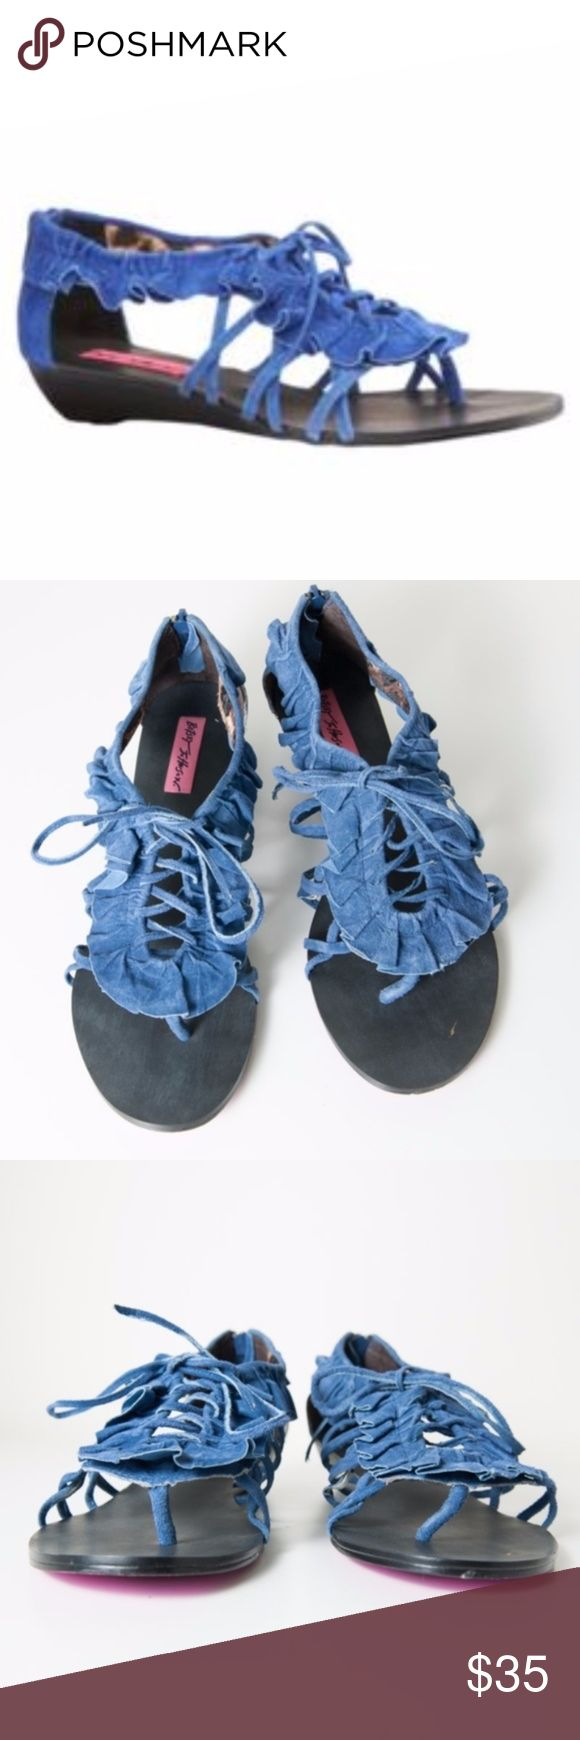 """⚡️FLASH SALE Betsey Johnson Cicii Sandal Suede Feminine ruffles and open air lacing details lend a dramatic vibe to a suede sandal styled with lacing details. Zip back closure. Multiple criss-crossed side straps. Suede upper, satin lining, synthetic sole. Size 8.5. Preloved condition. Some fraying on sandals, see photos. Heel measures approximately 1.25"""" Betsey Johnson Shoes Sandals"""